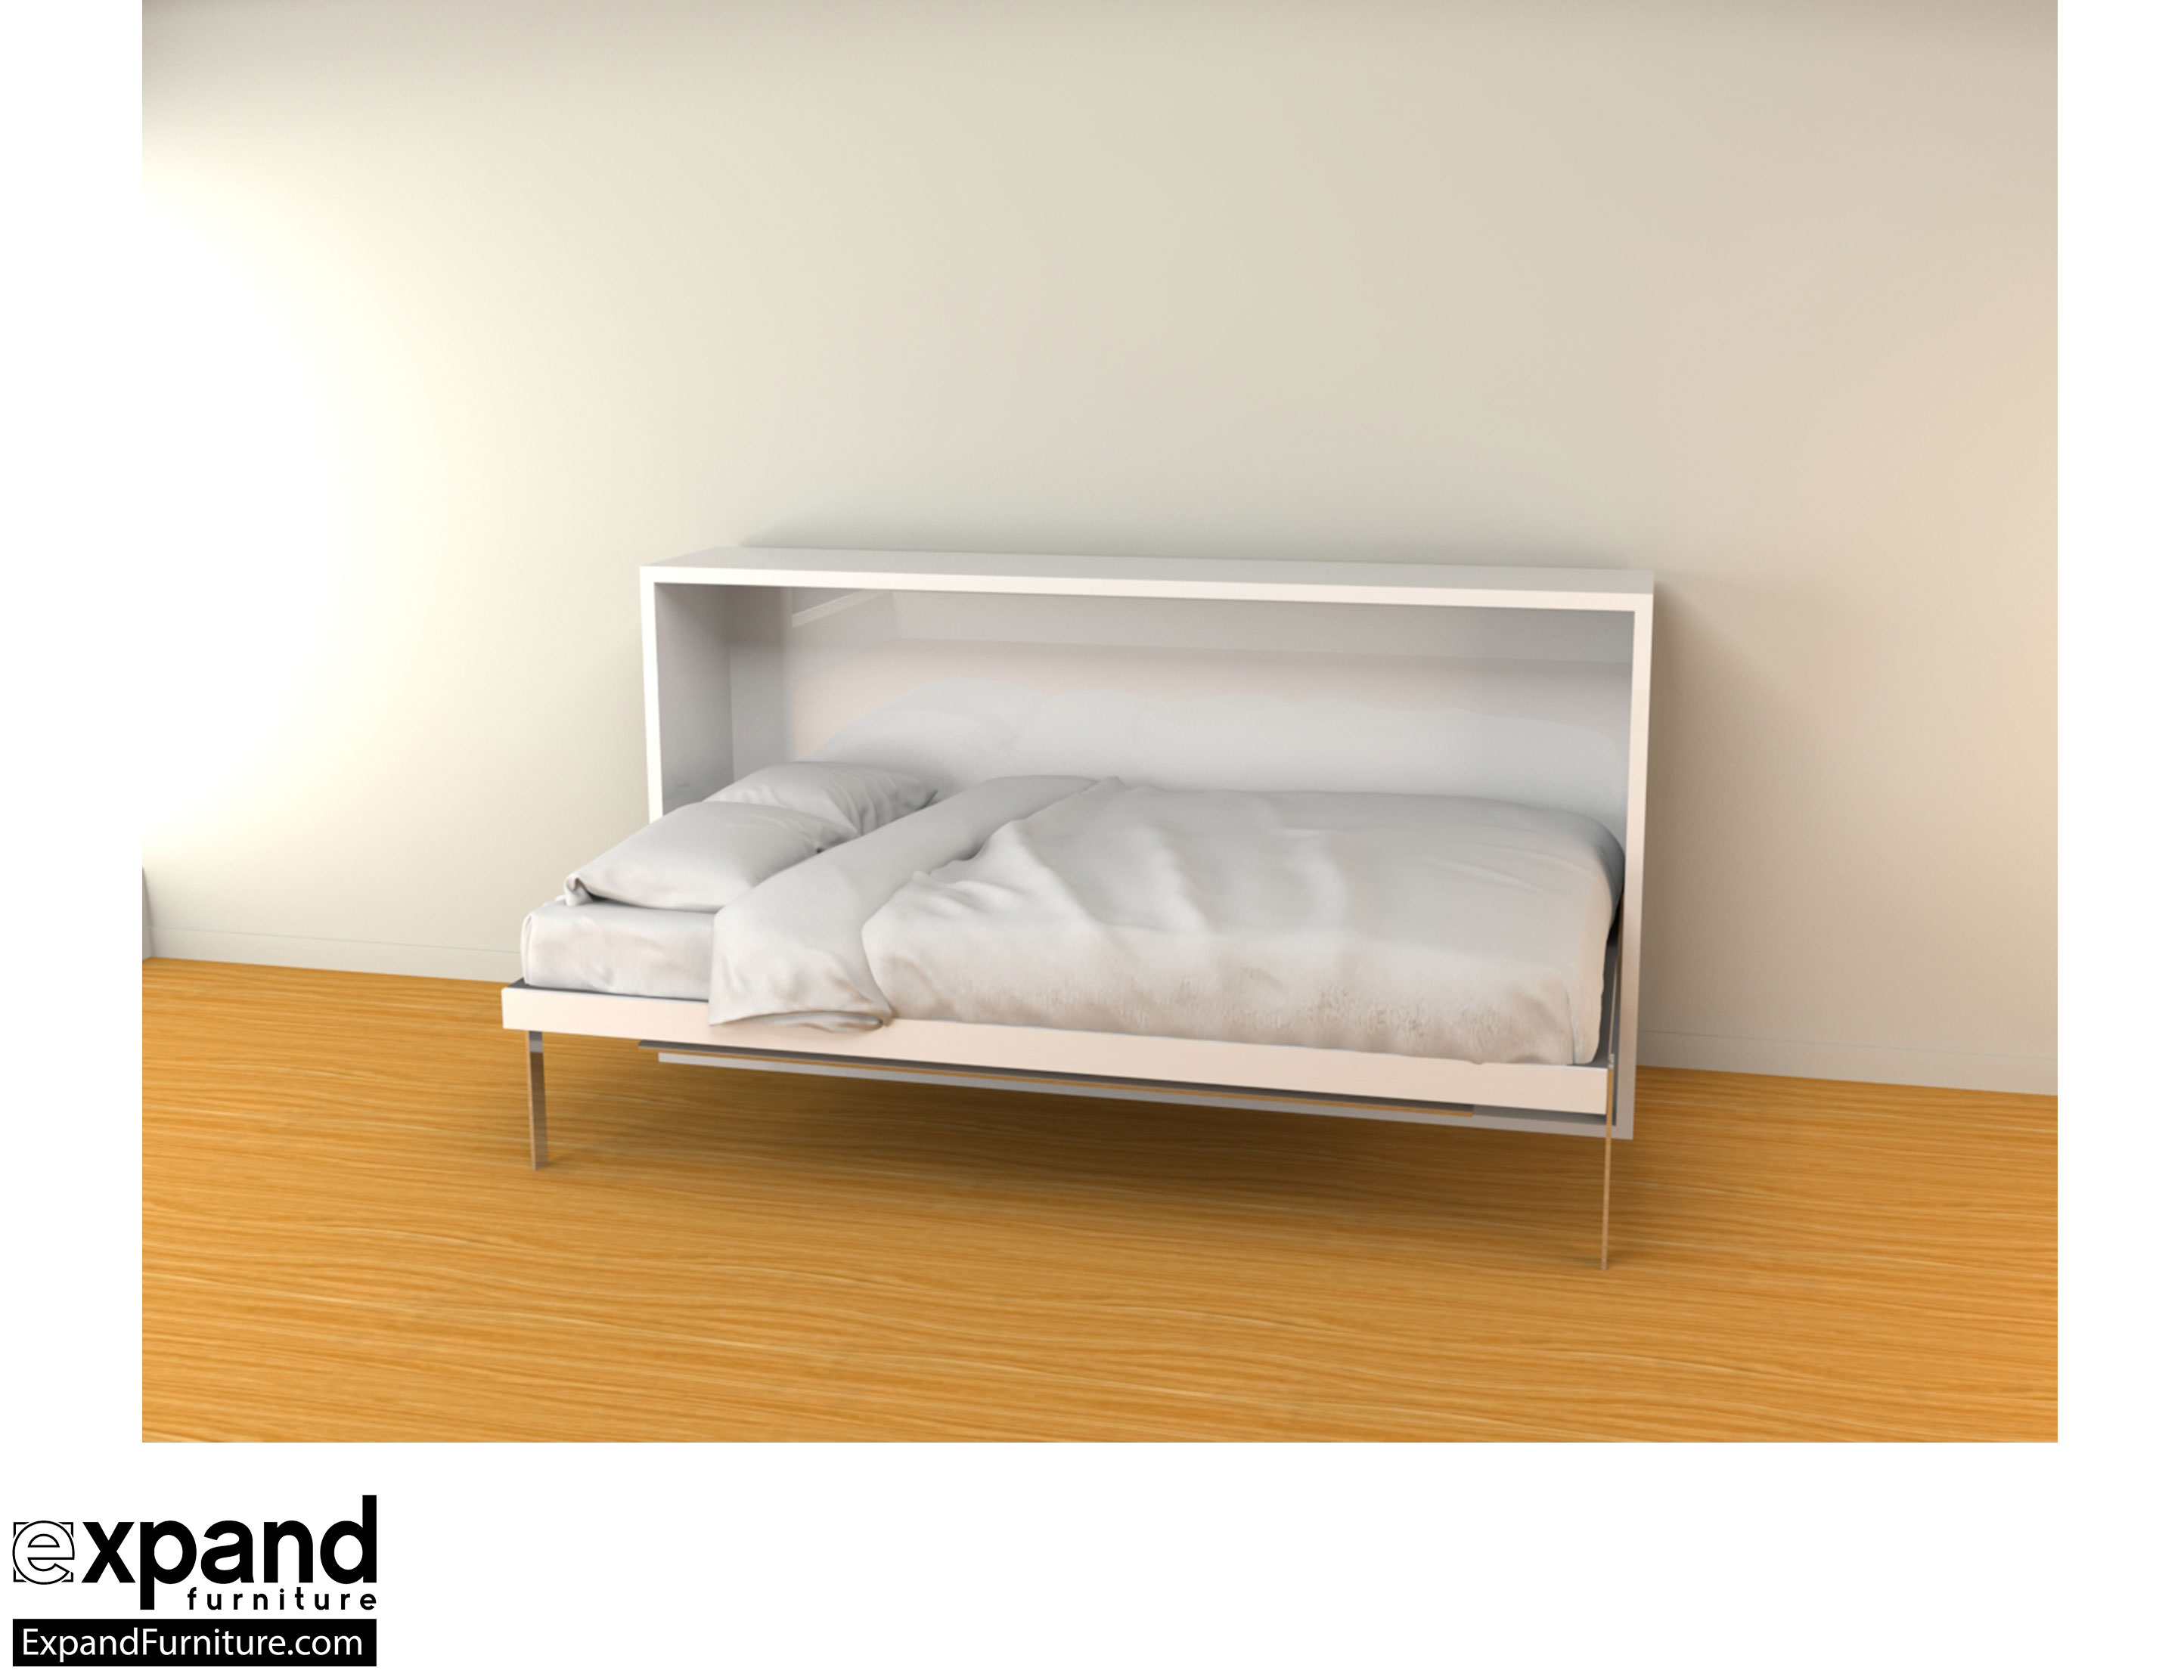 sectional sofa beds for small spaces swedish design hover - horizontal single murphy bed desk | expand ...